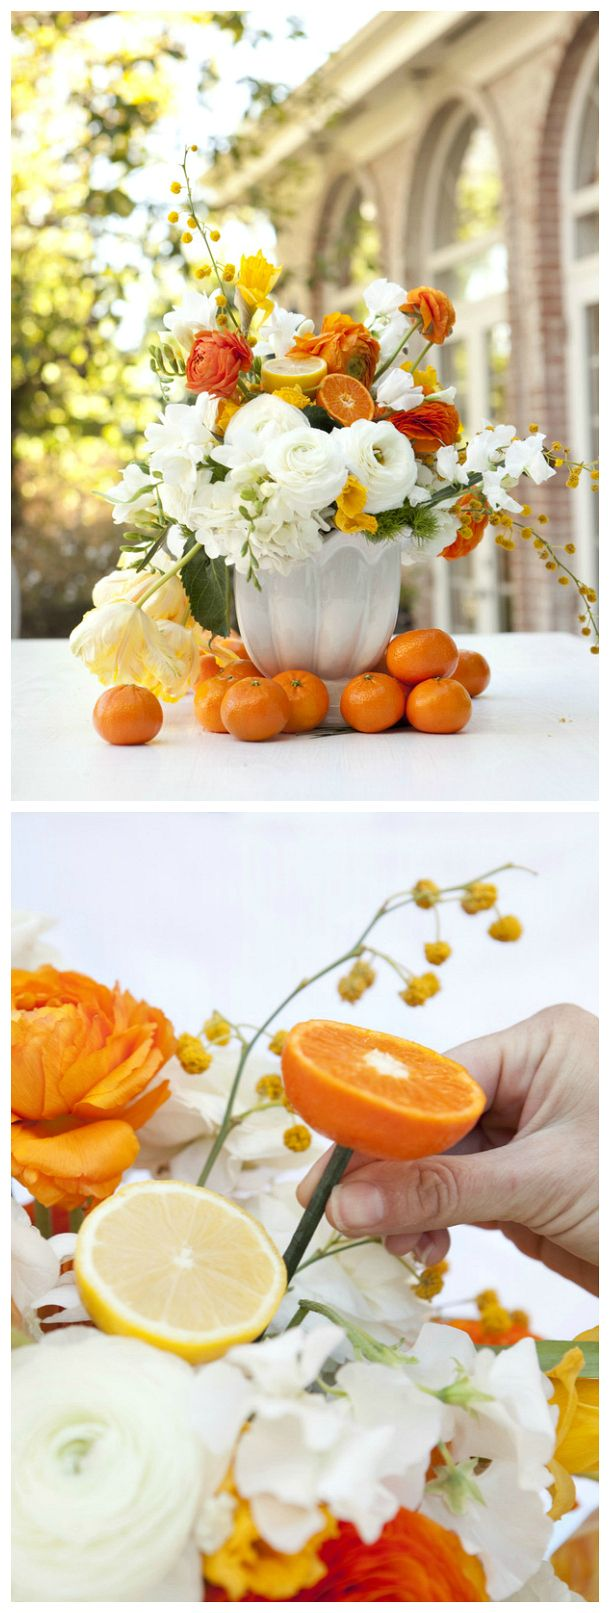 Such a fresh look for Summer! Florals♥  Table Centerpiece With Fresh Oranges